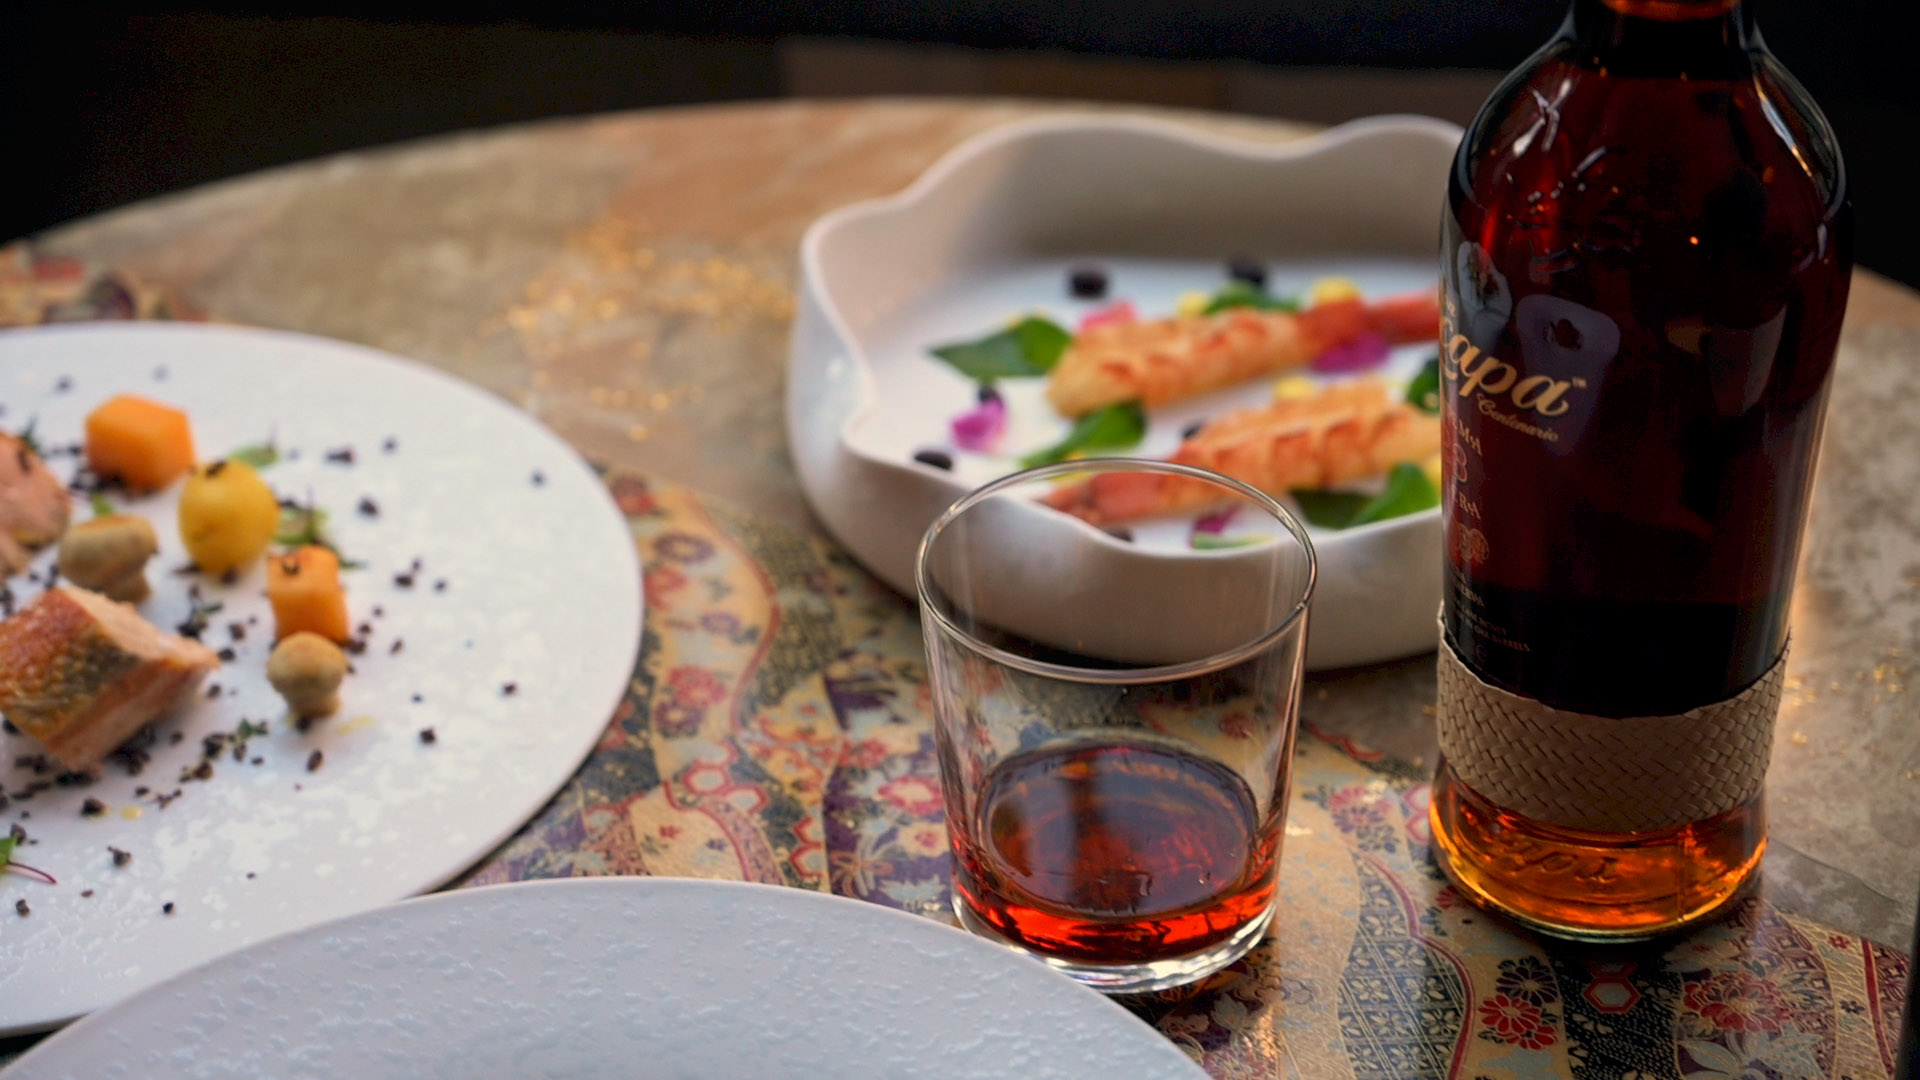 Zacapa Enchanted Dinner - Home delivery